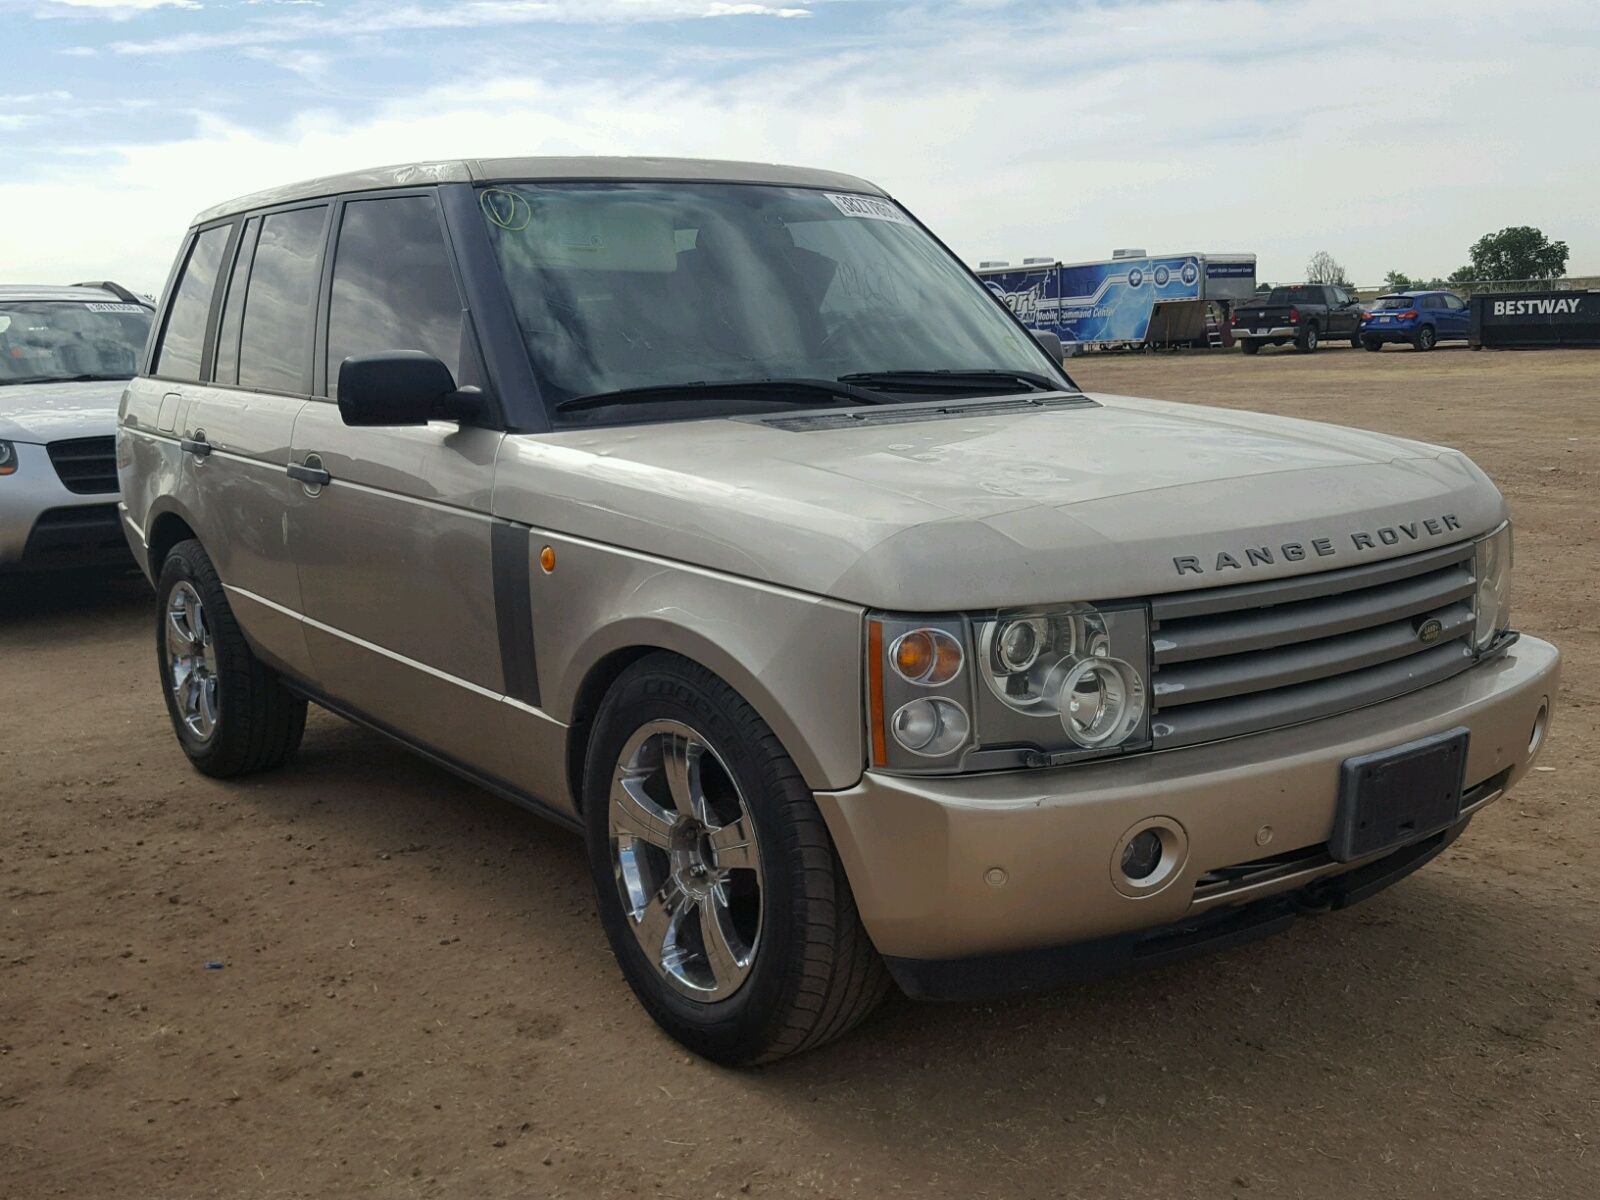 2003 Land Rover Range Rover for sale at Copart Colorado Springs CO